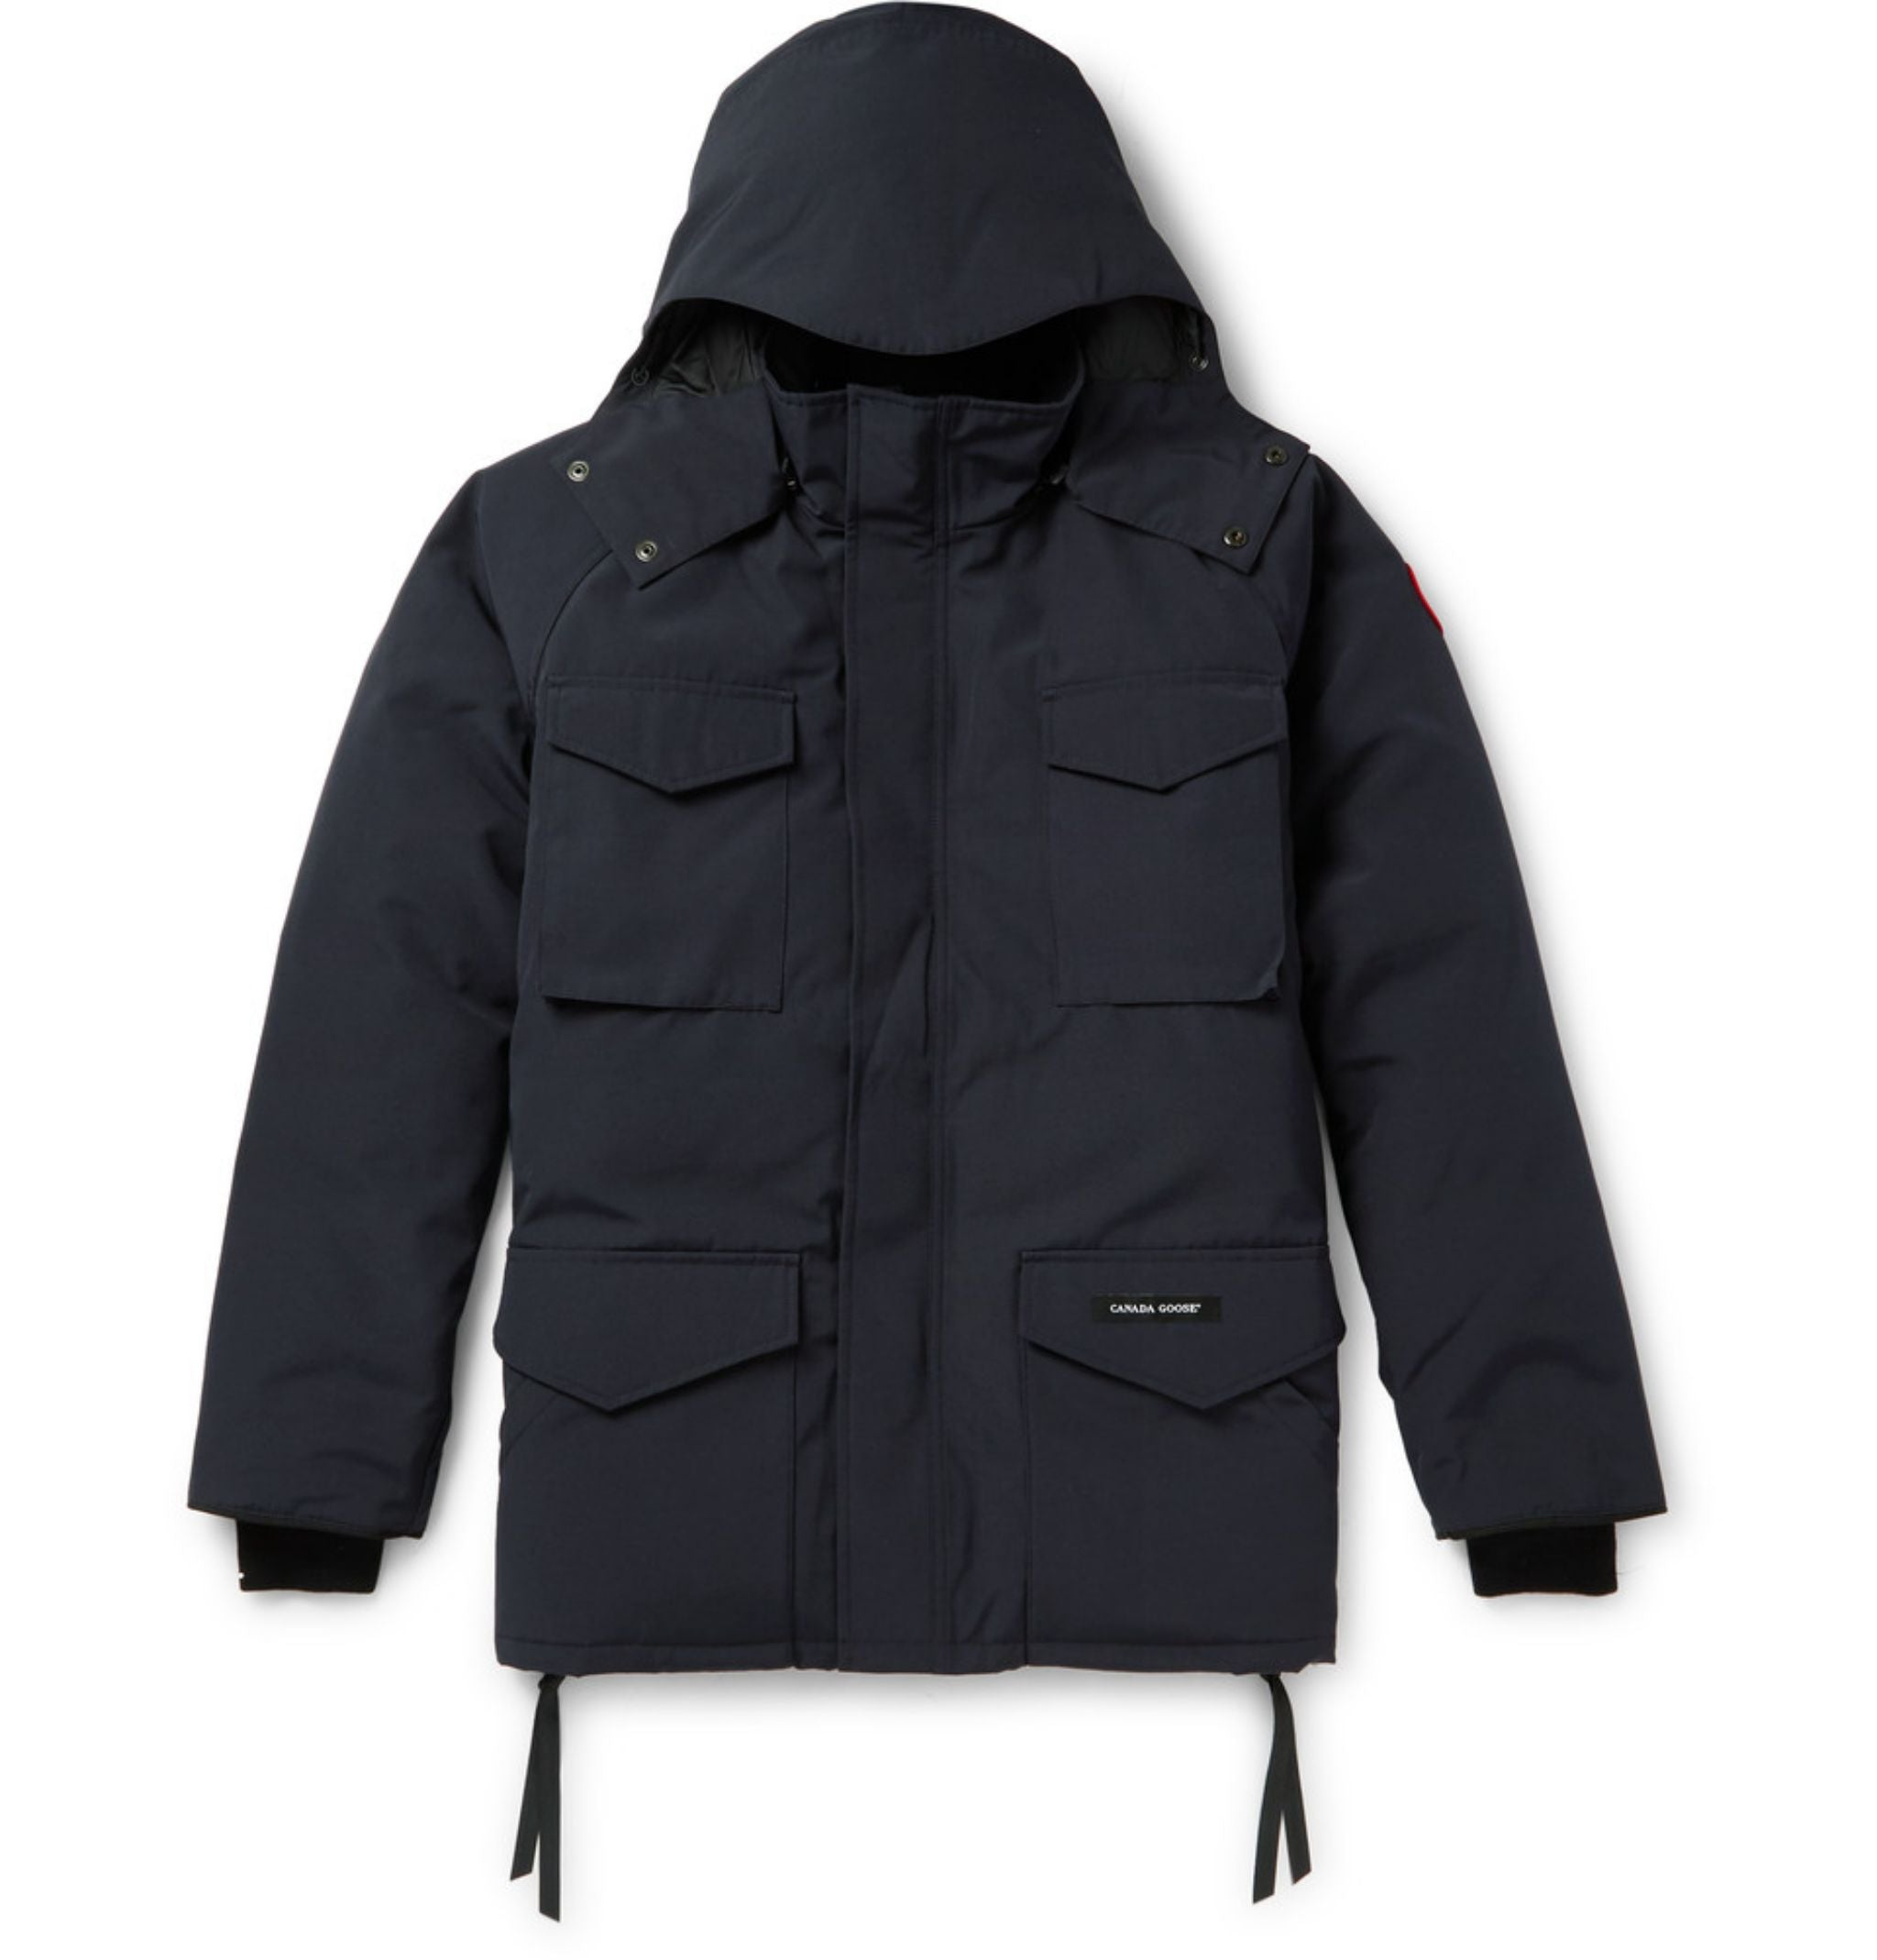 best-overcoat-for-winter-canada-goose-down-parka-jacket